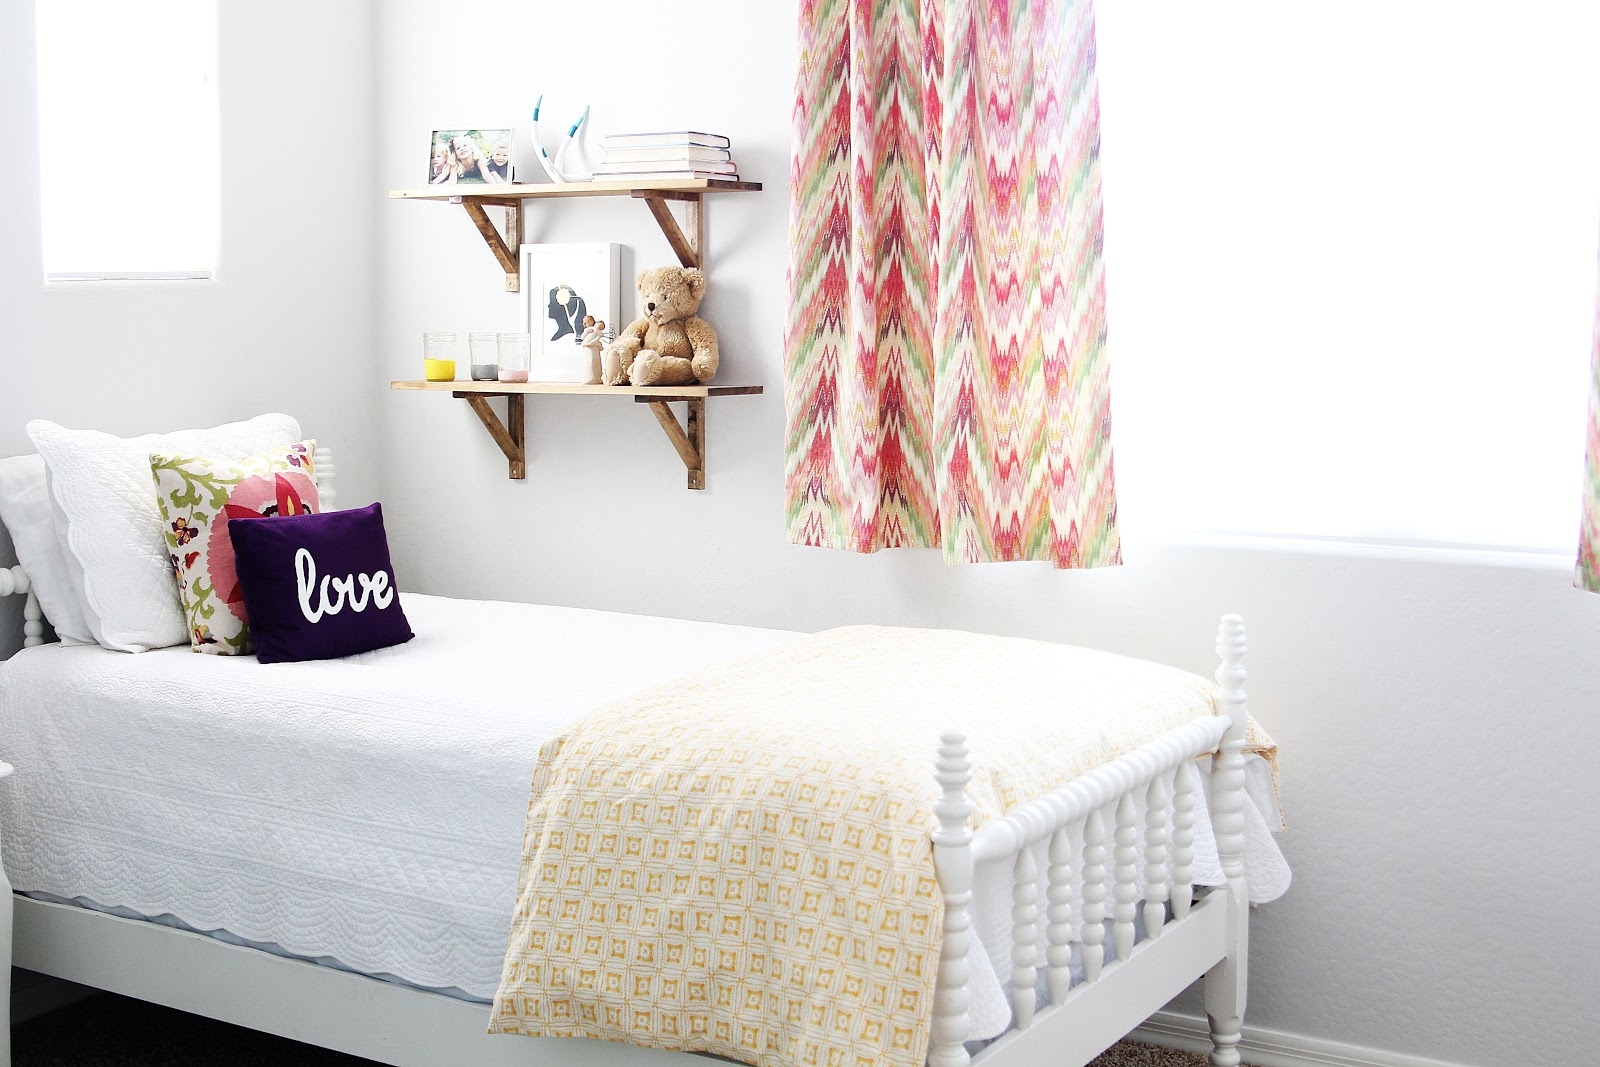 15 Adorable Girlu0027s Room Ideas